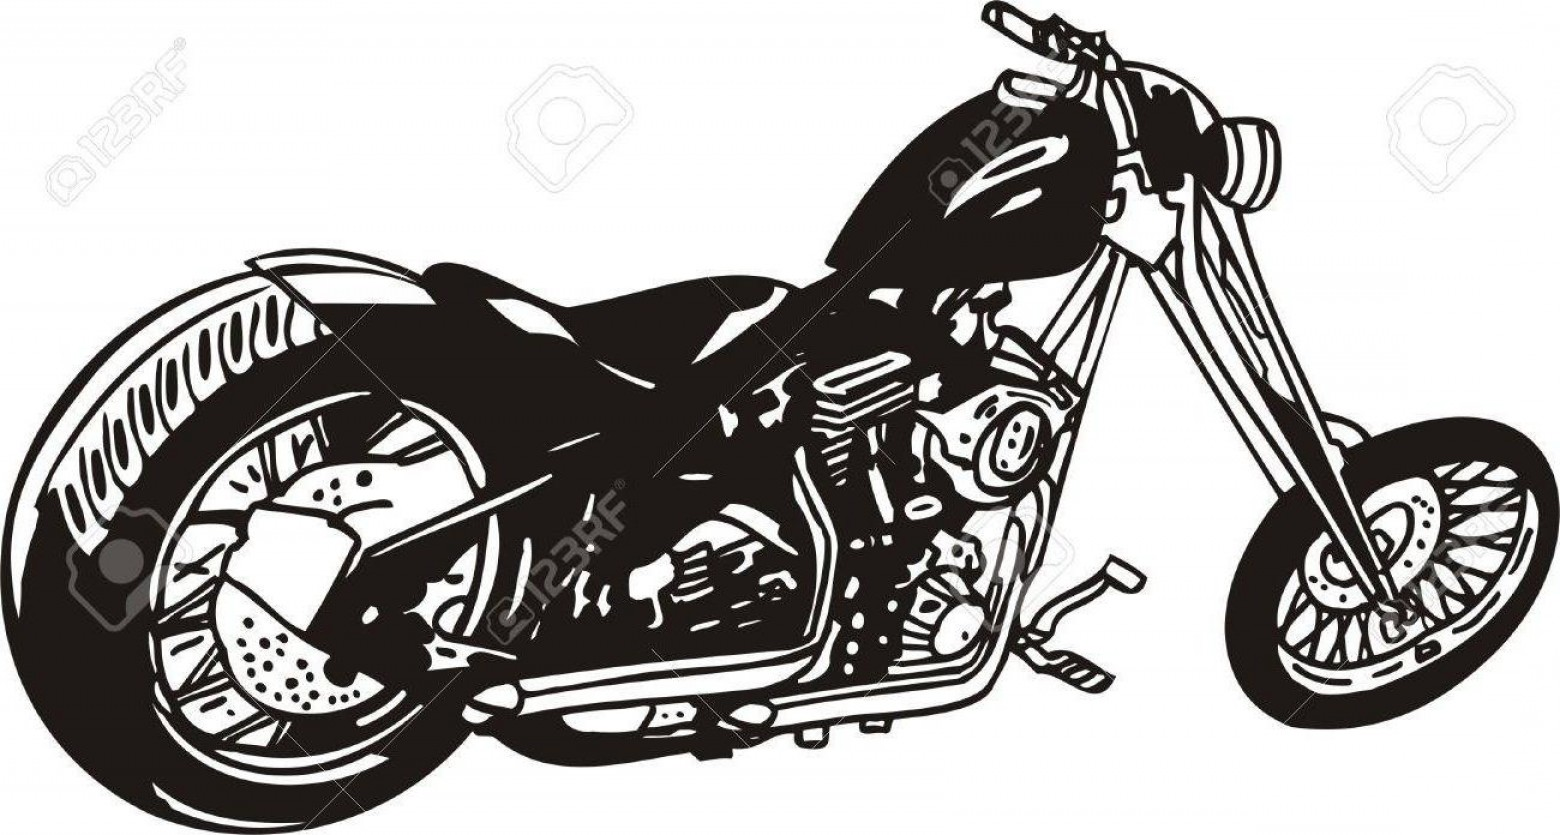 Harley-Davidson Flame Vector Silhouette: Best Free Harley Davidson Vector Library